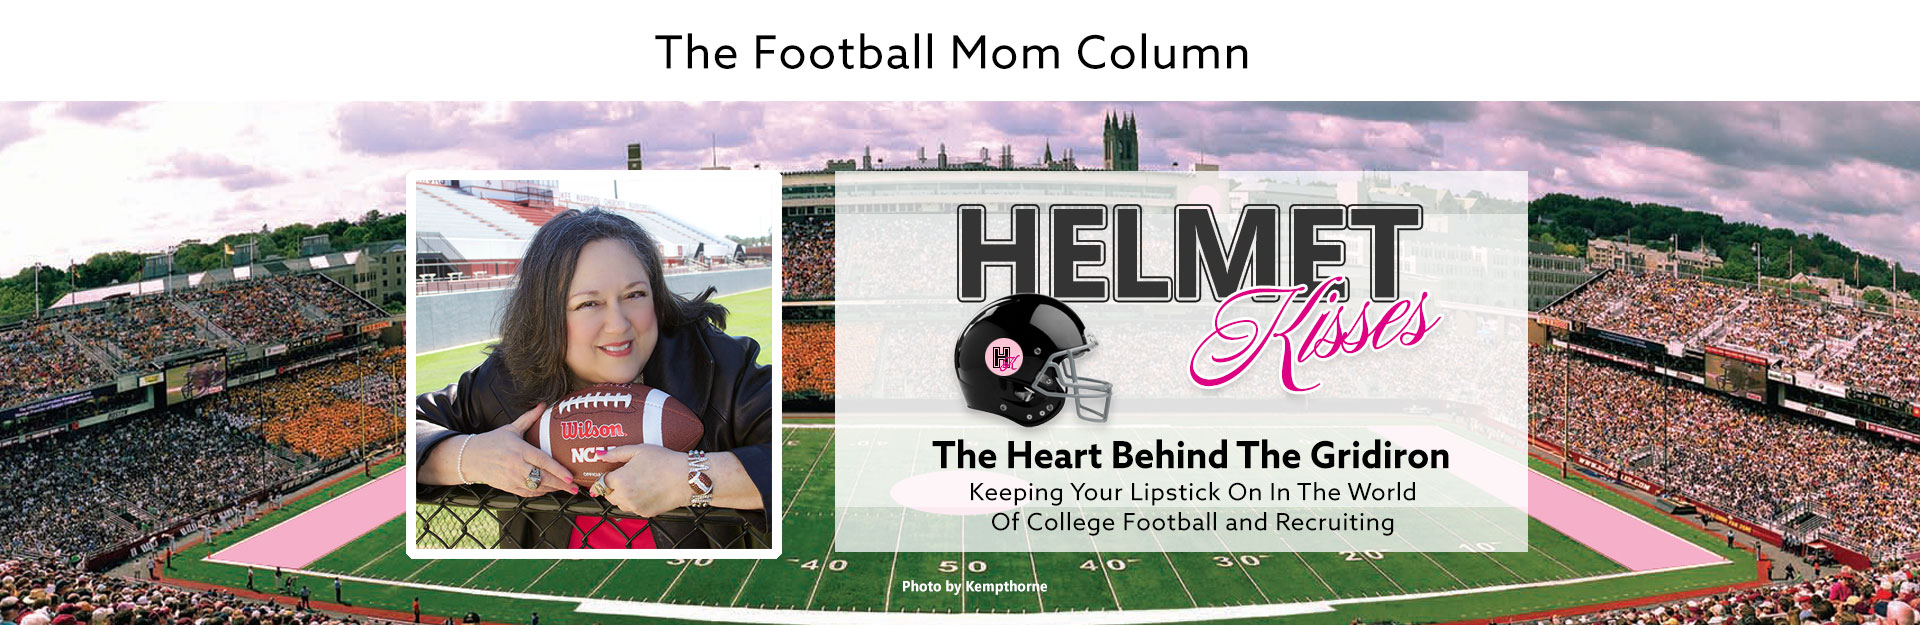 Football Mom Column